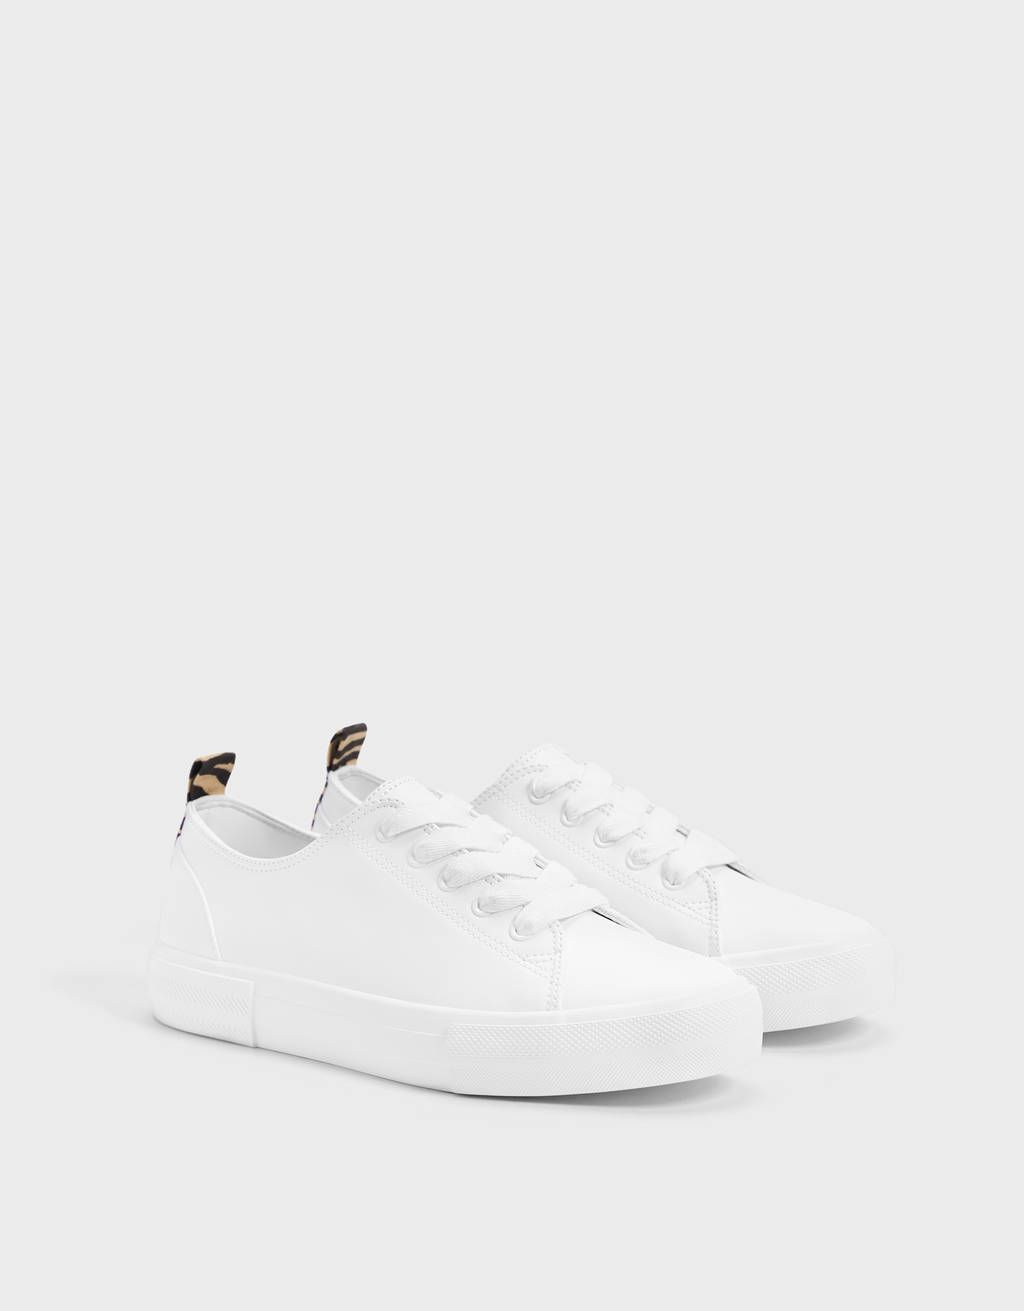 4c3c8c892761 Trainers - Shoes - COLLECTION - WOMEN - Bershka United States